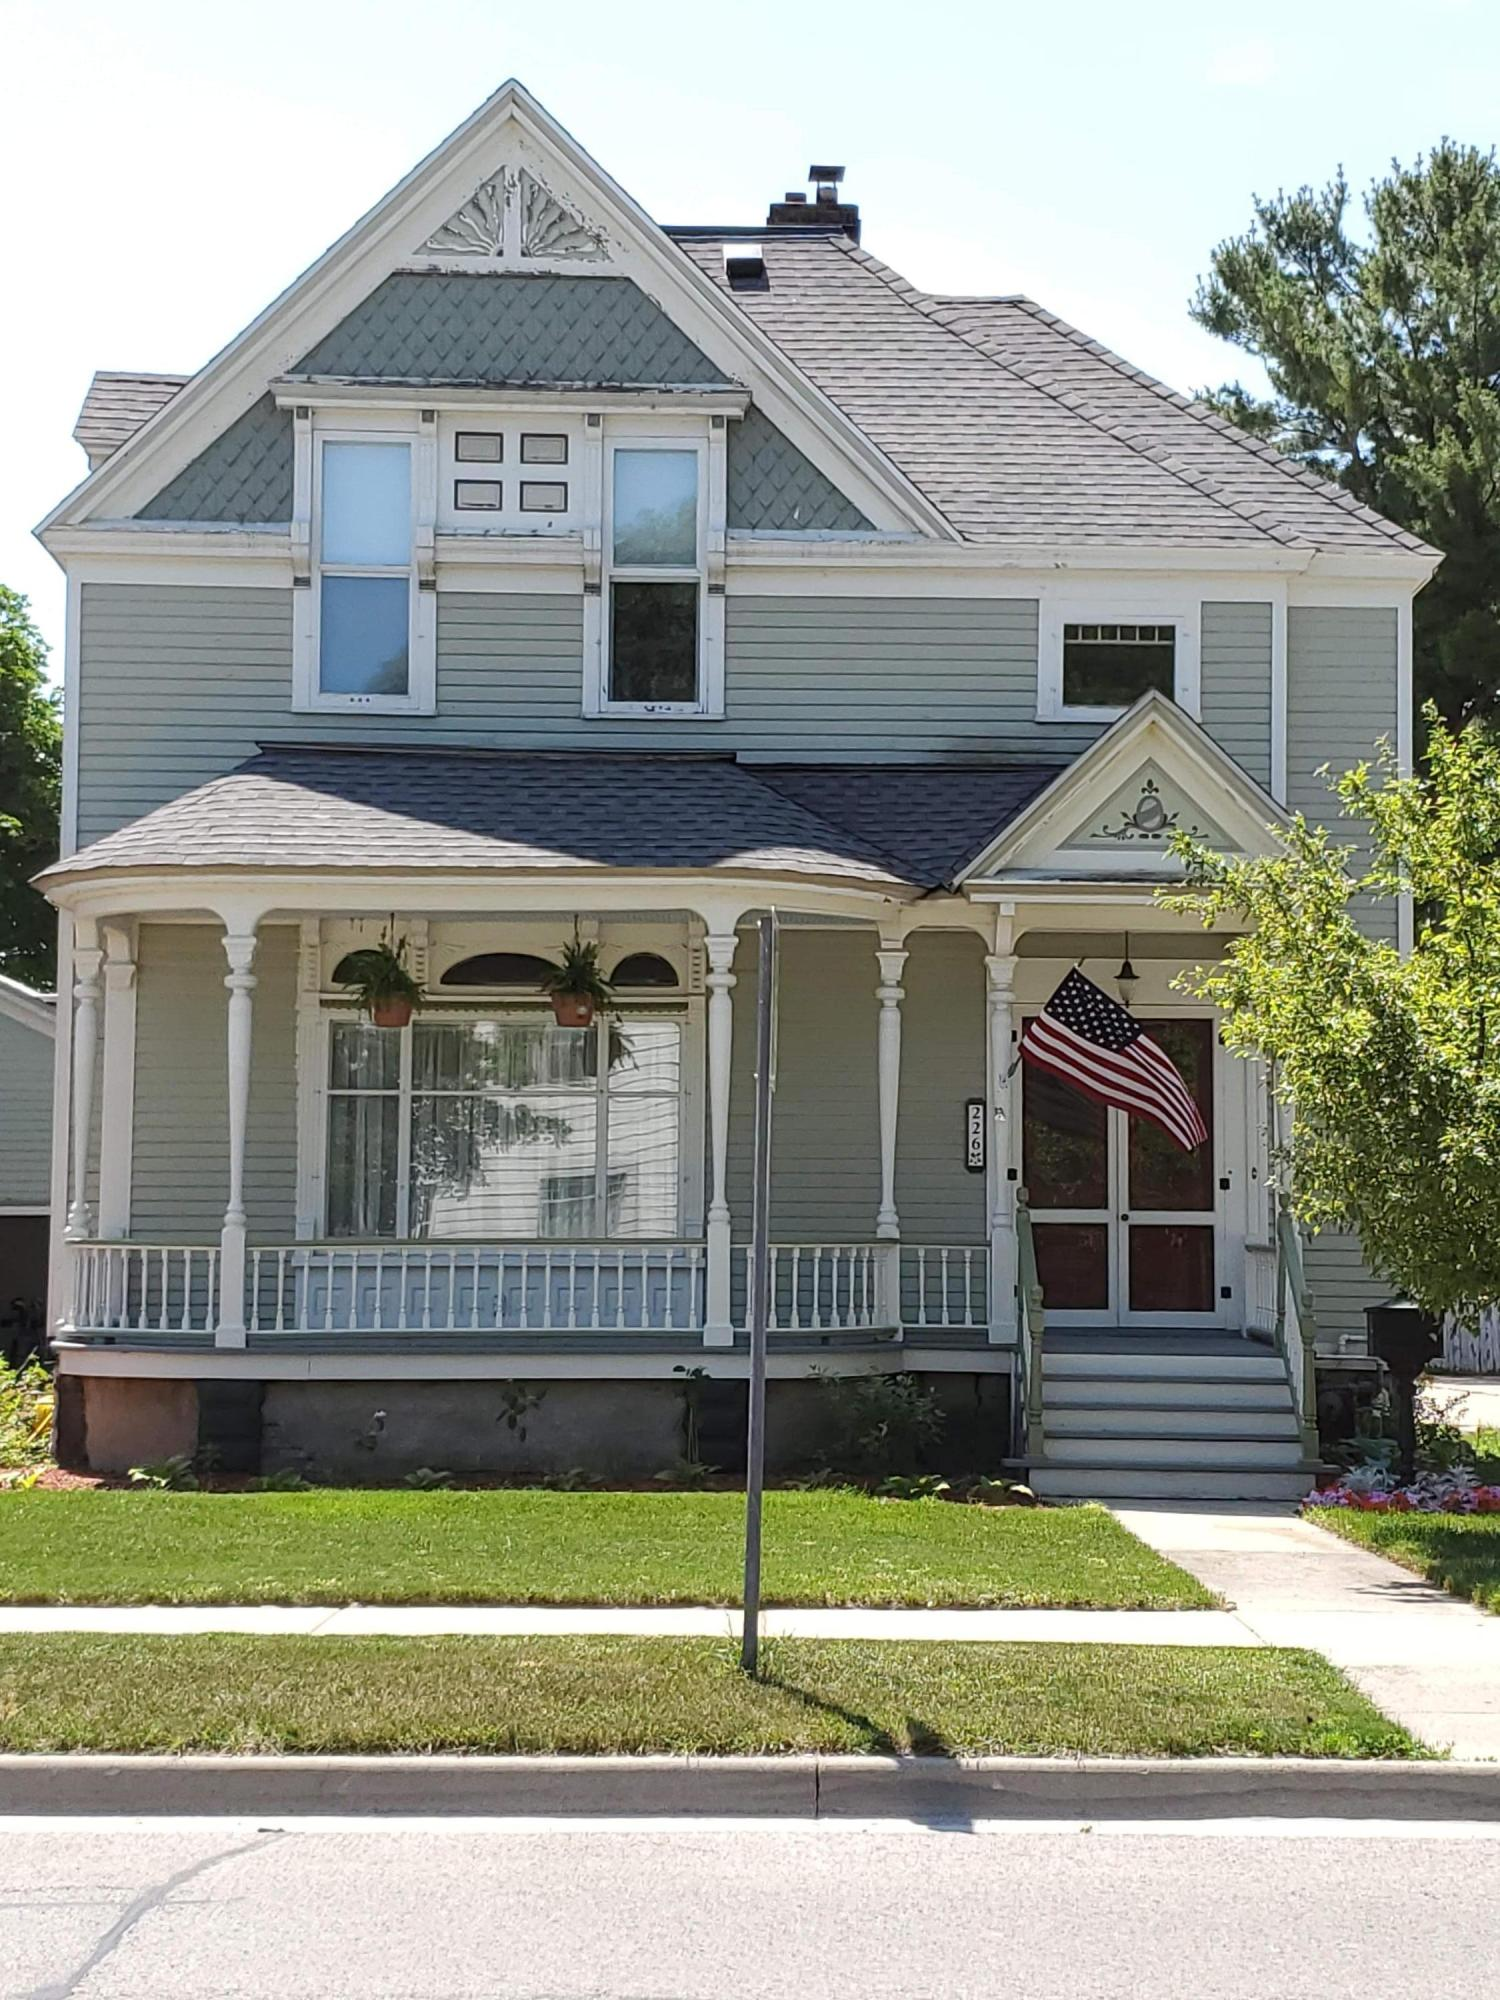 226 W Washington Avenue, one of homes for sale in Alpena